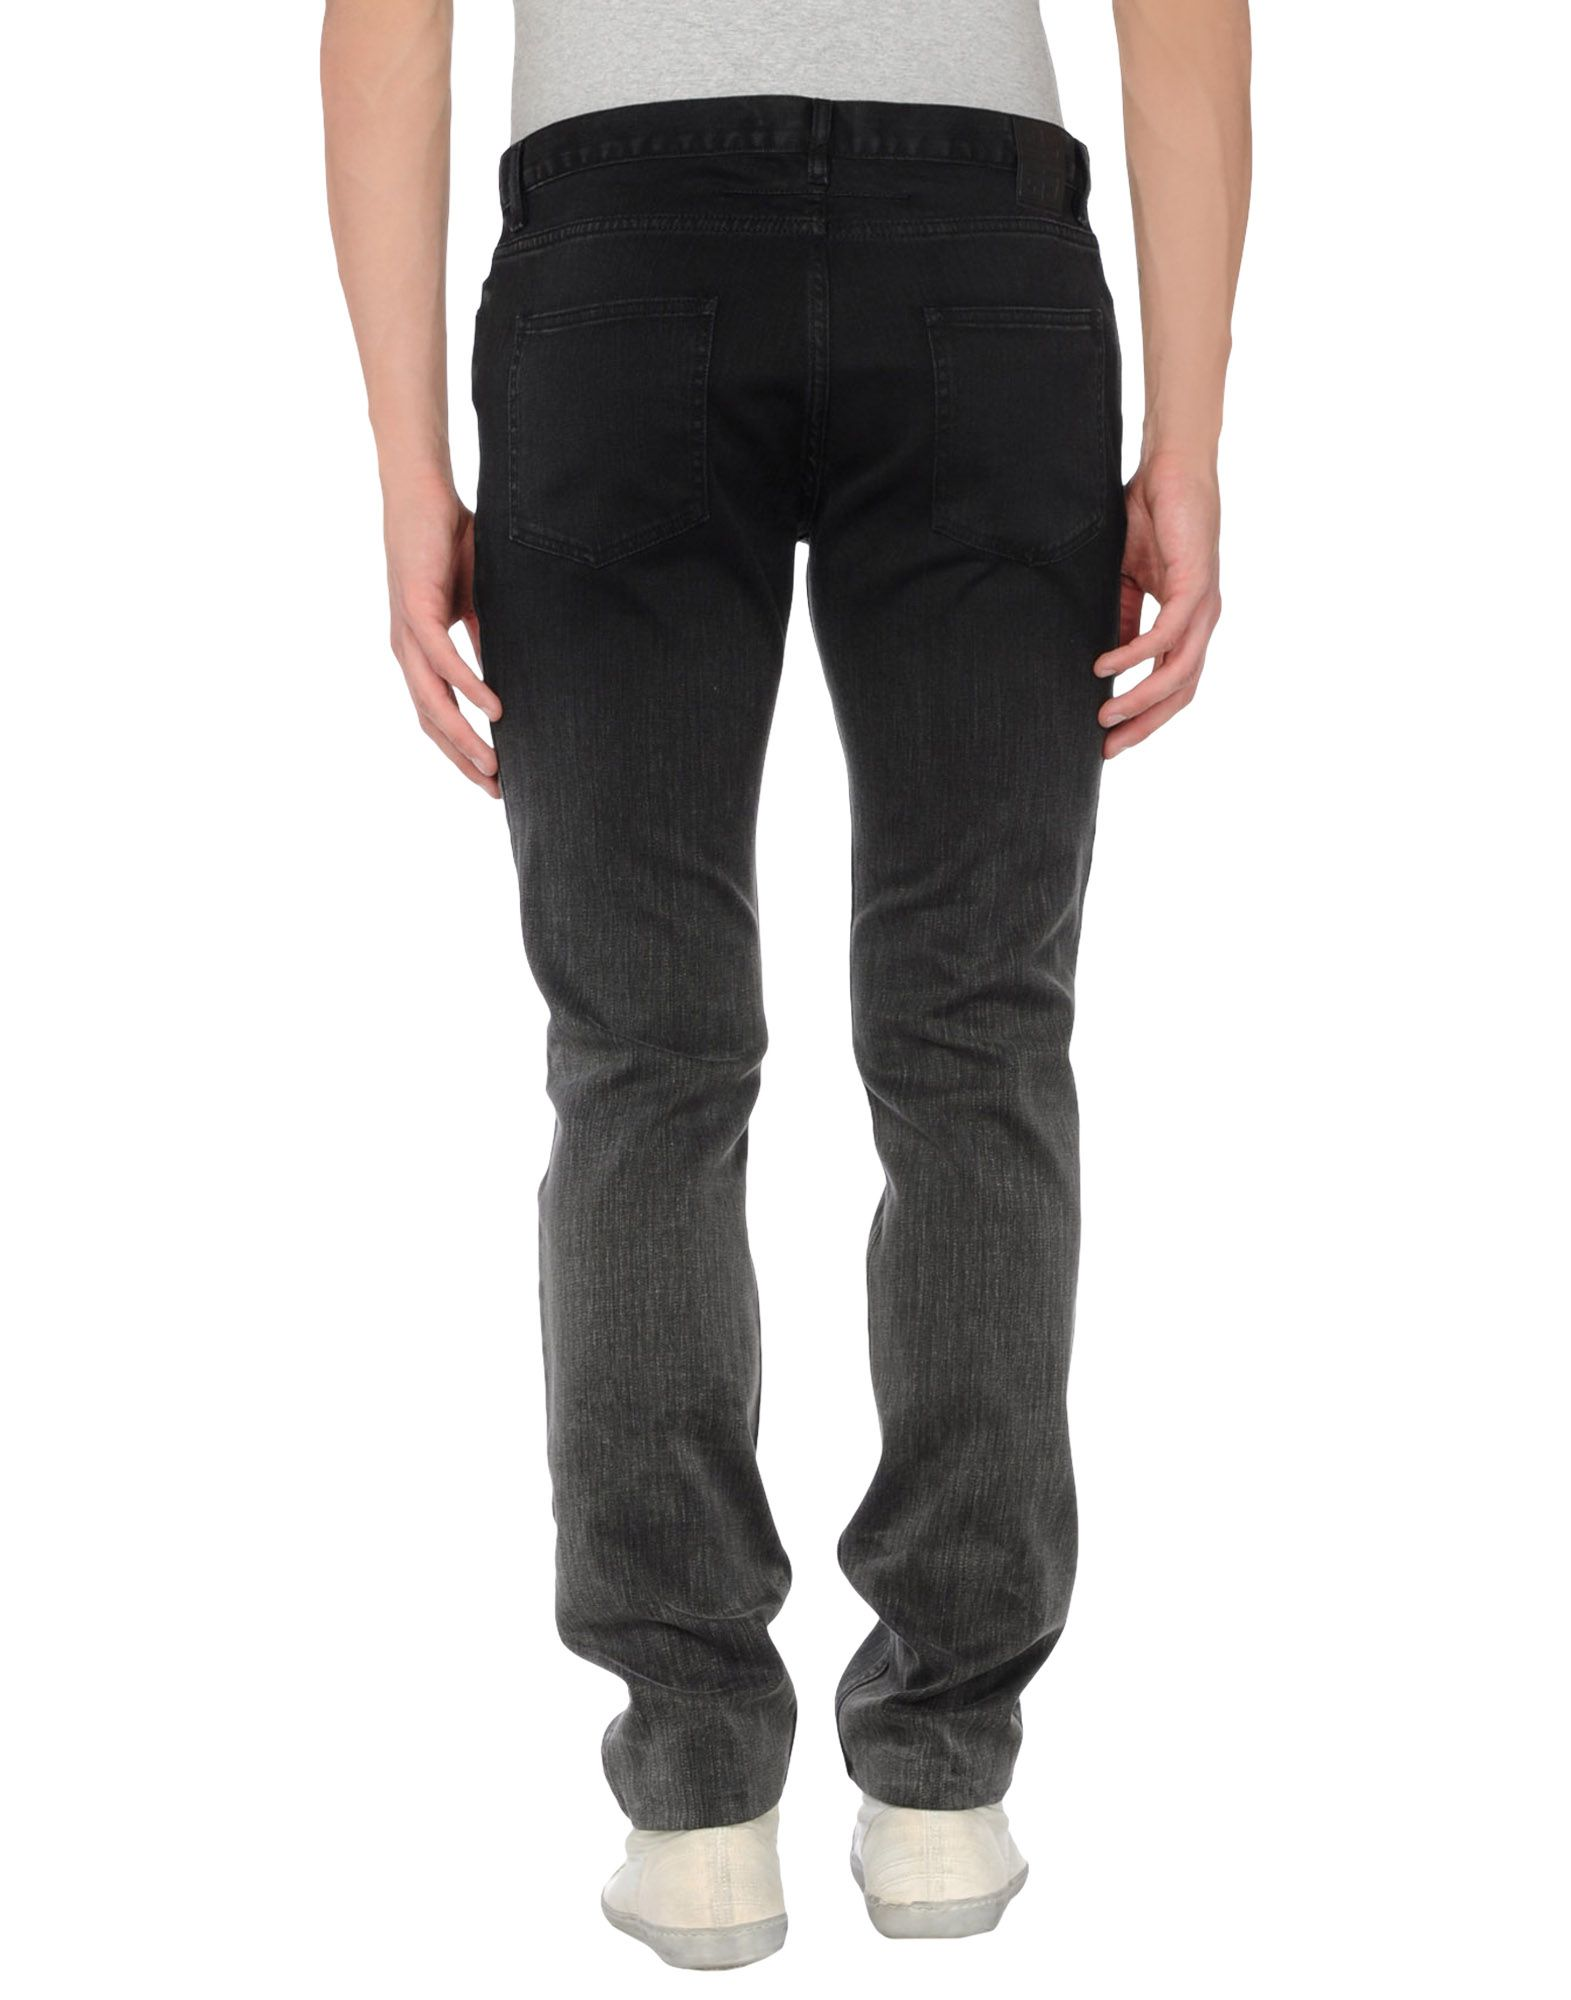 Givenchy Denim Trousers in Black for Men